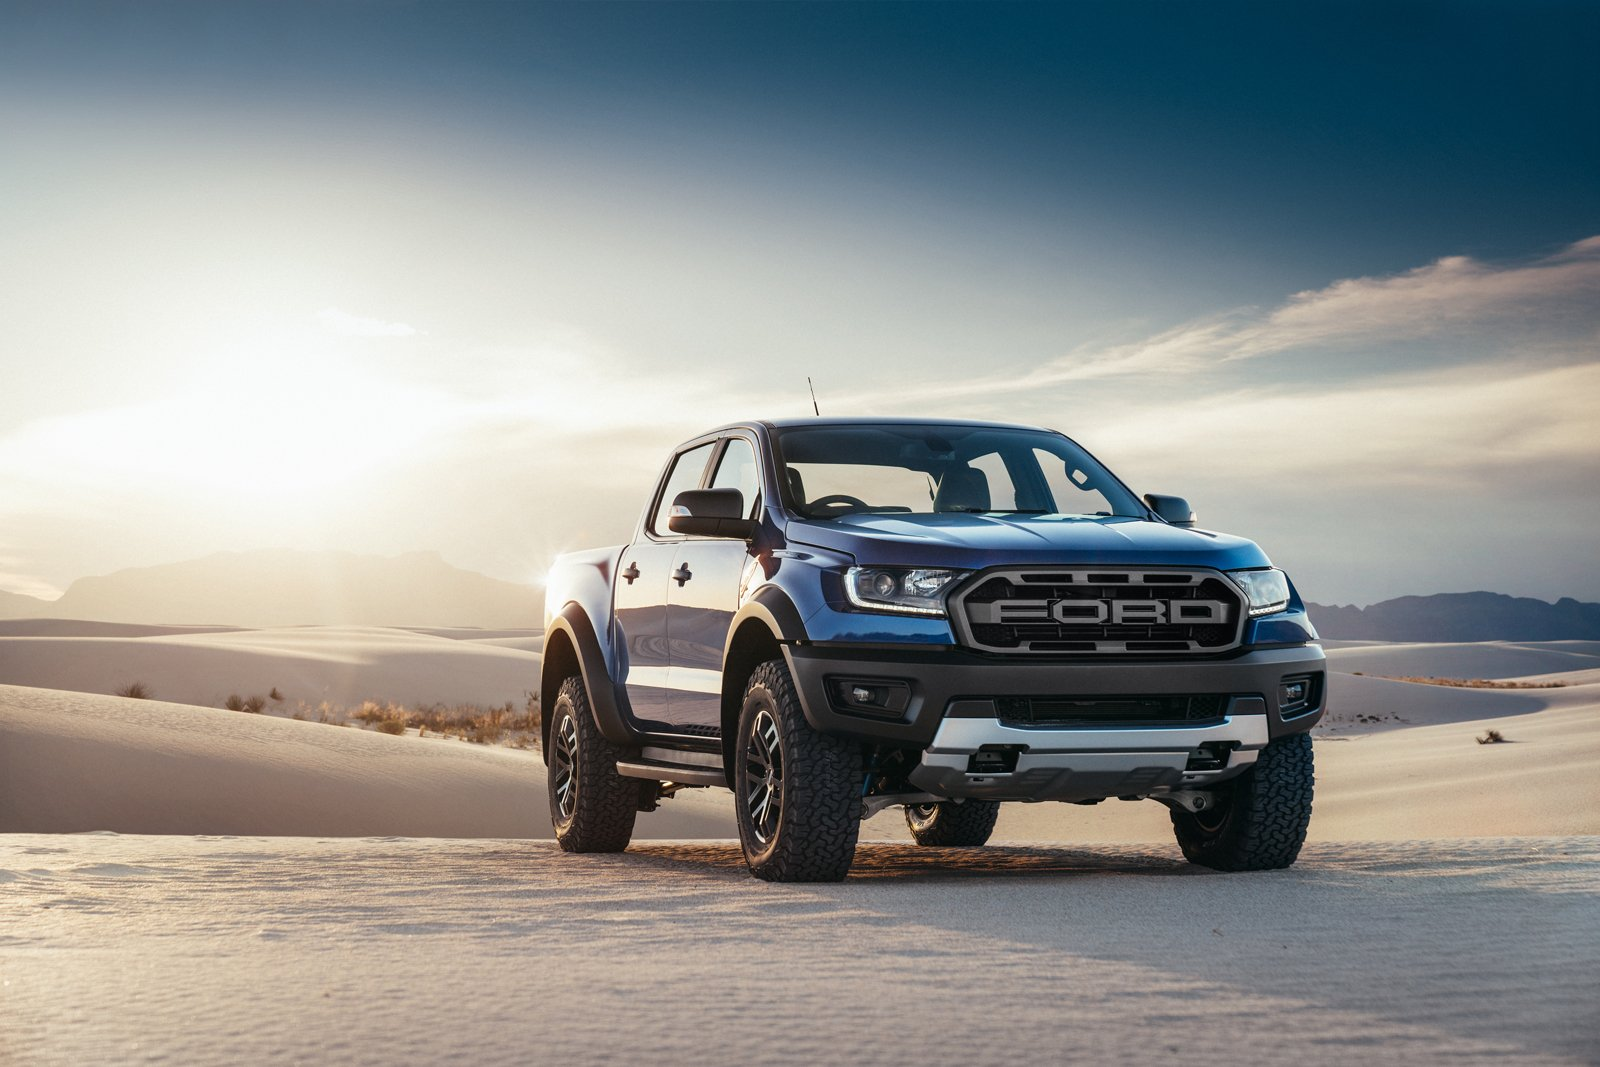 2019 Ford Ranger Raptor Arrives With 210 HP Diesel, Off-Road Ready Suspension